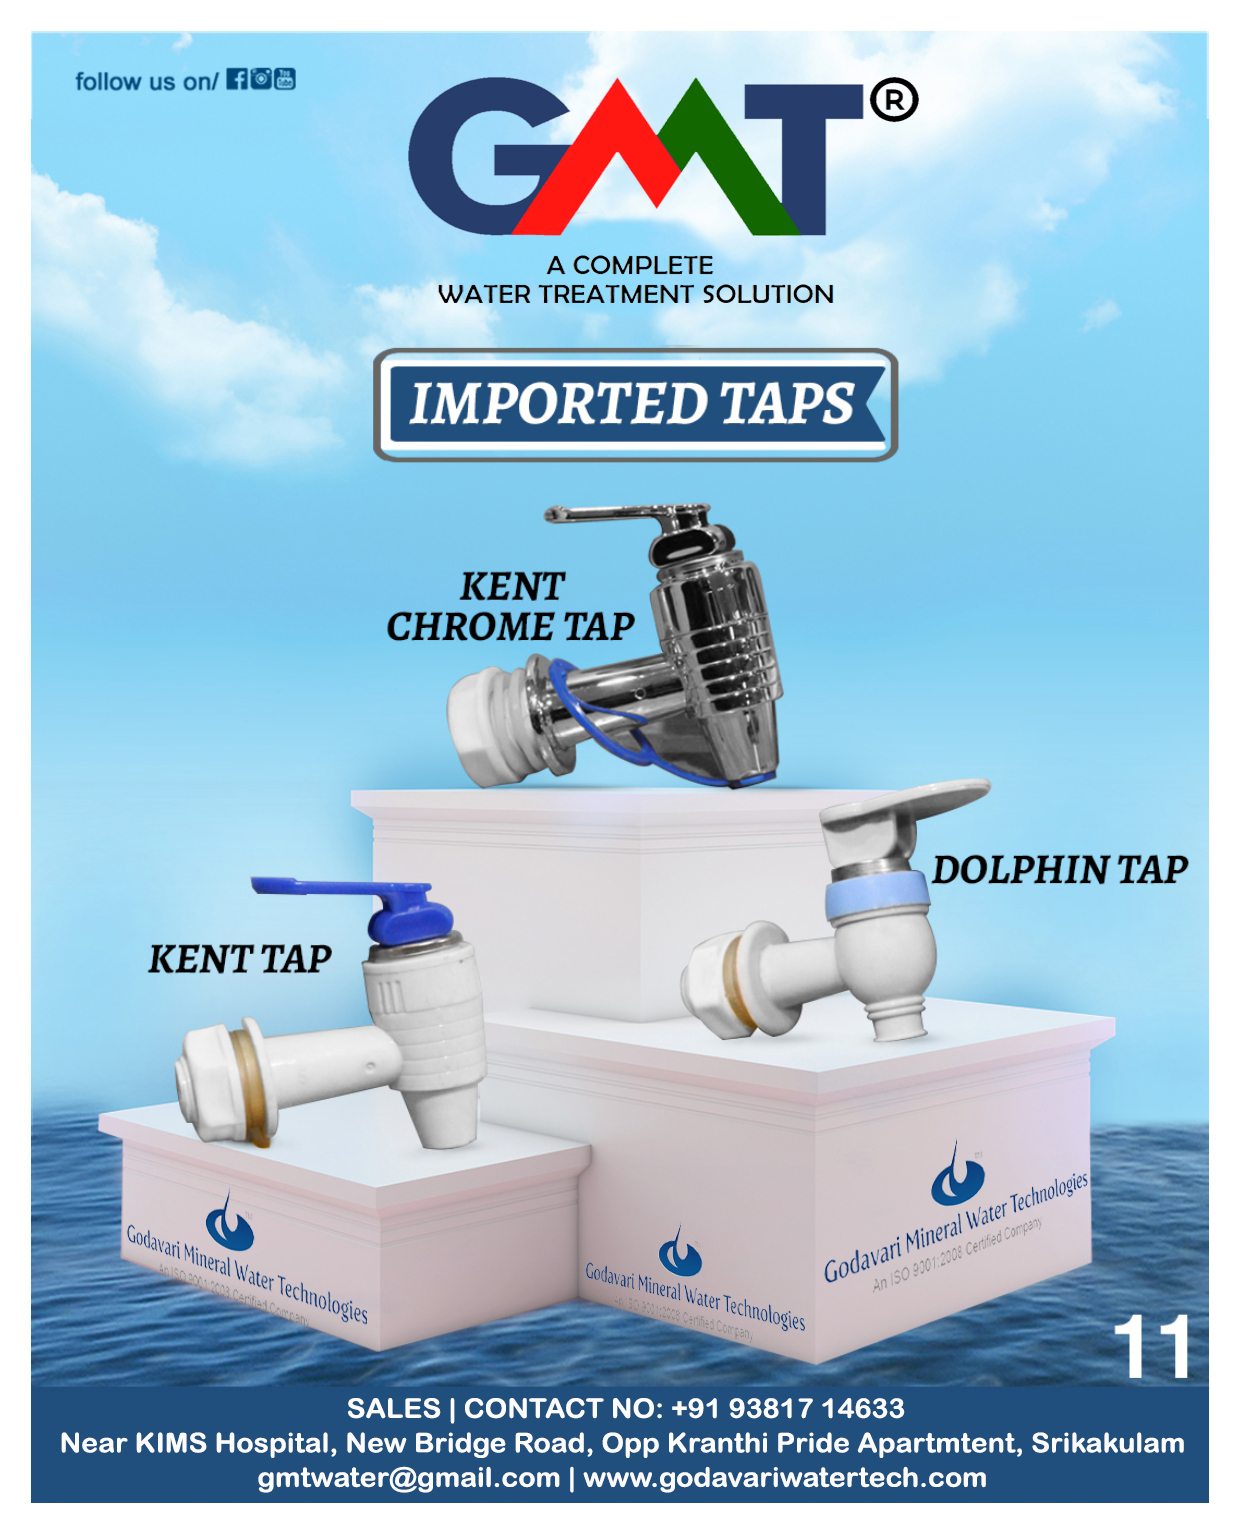 IMPORTED TAPS Image